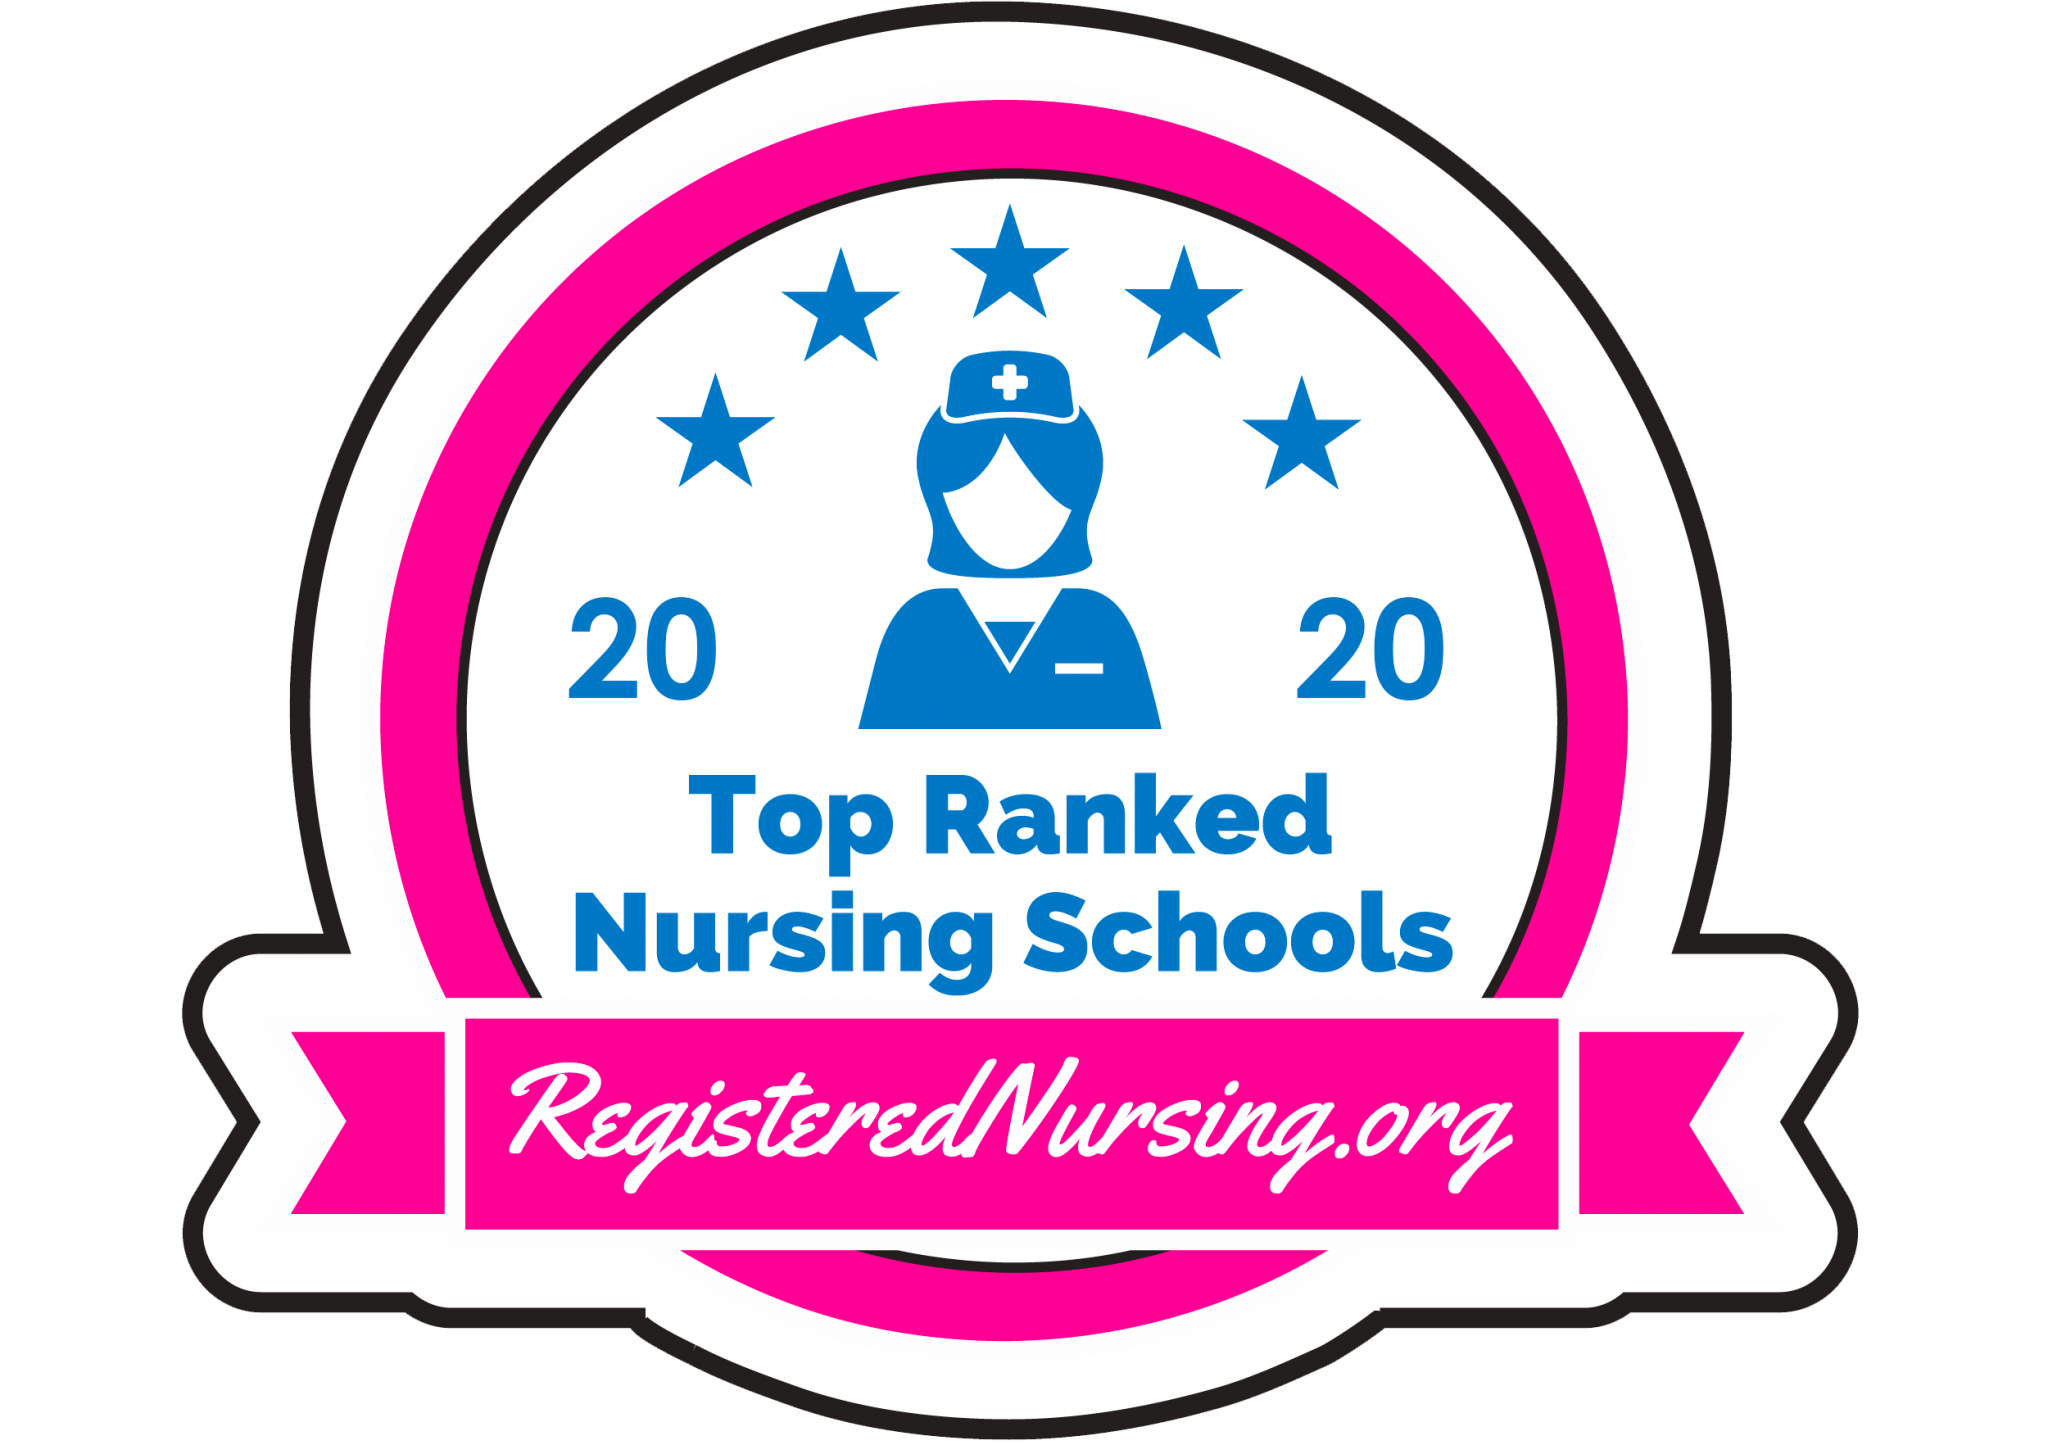 Badge for 2020 Top Ranked Nursing Schools by RegisteredNursing.org